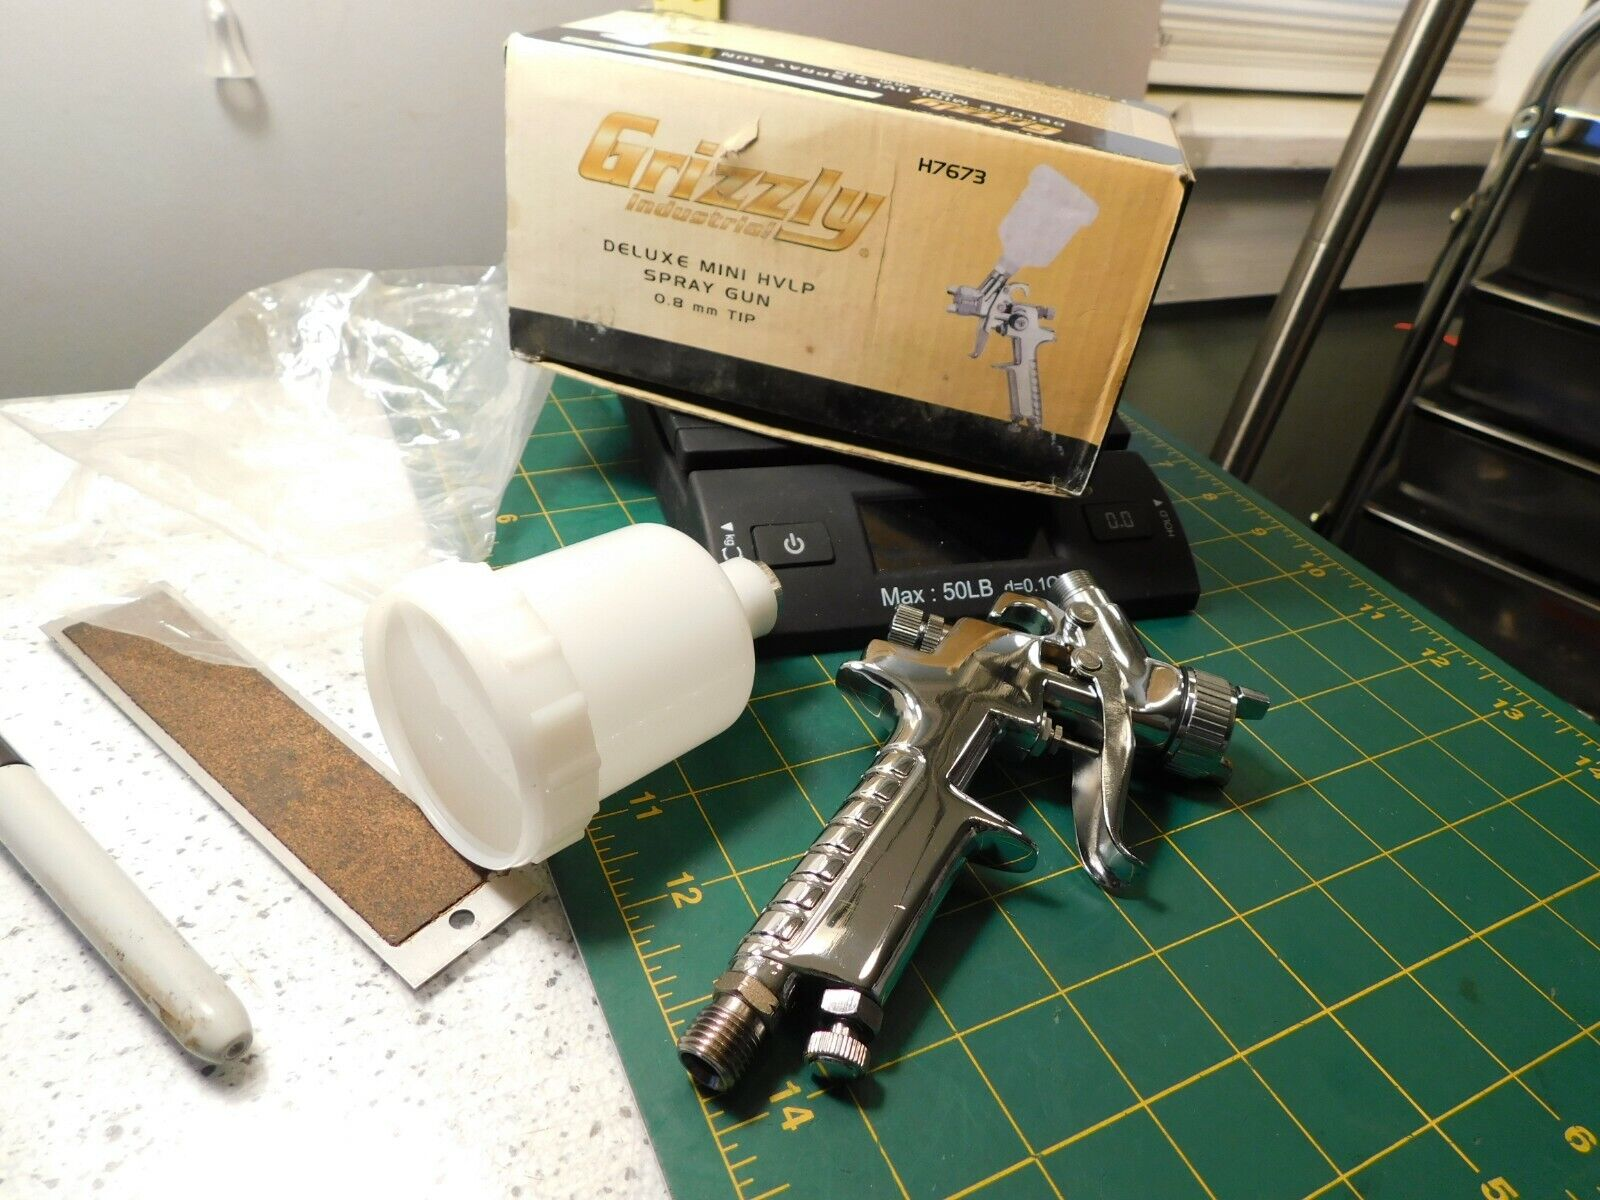 GRIZZLY INDUSTRIAL H7673 Deluxe Mini HVLP Spray Gun 1.8mm Tip NOS - $24.95